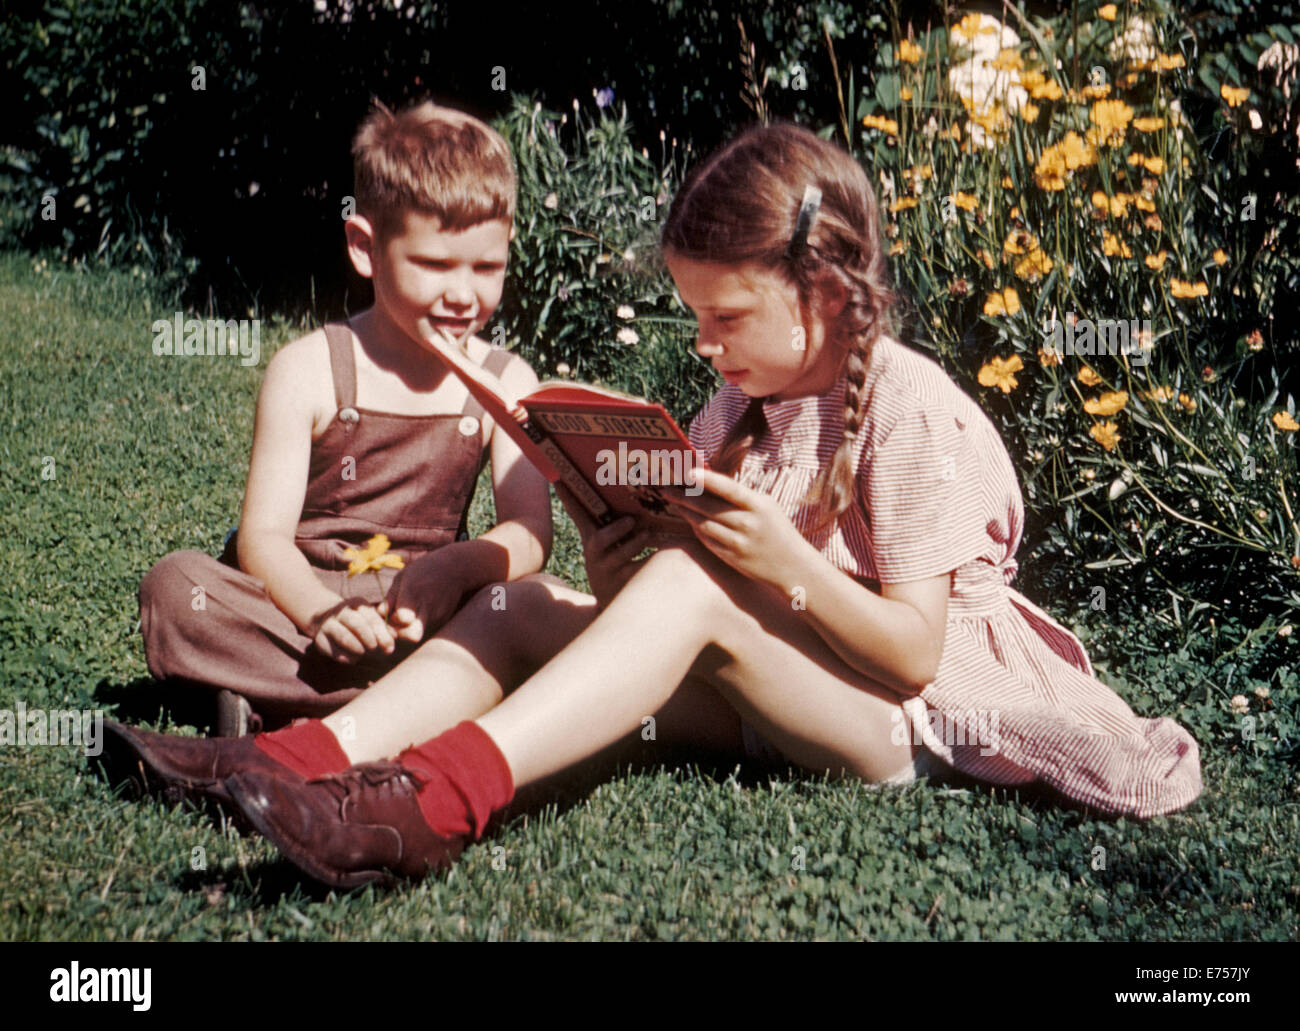 In 1945 a young American brother and sister were photographed with early Kodachrome color film while reading a book - Stock Image